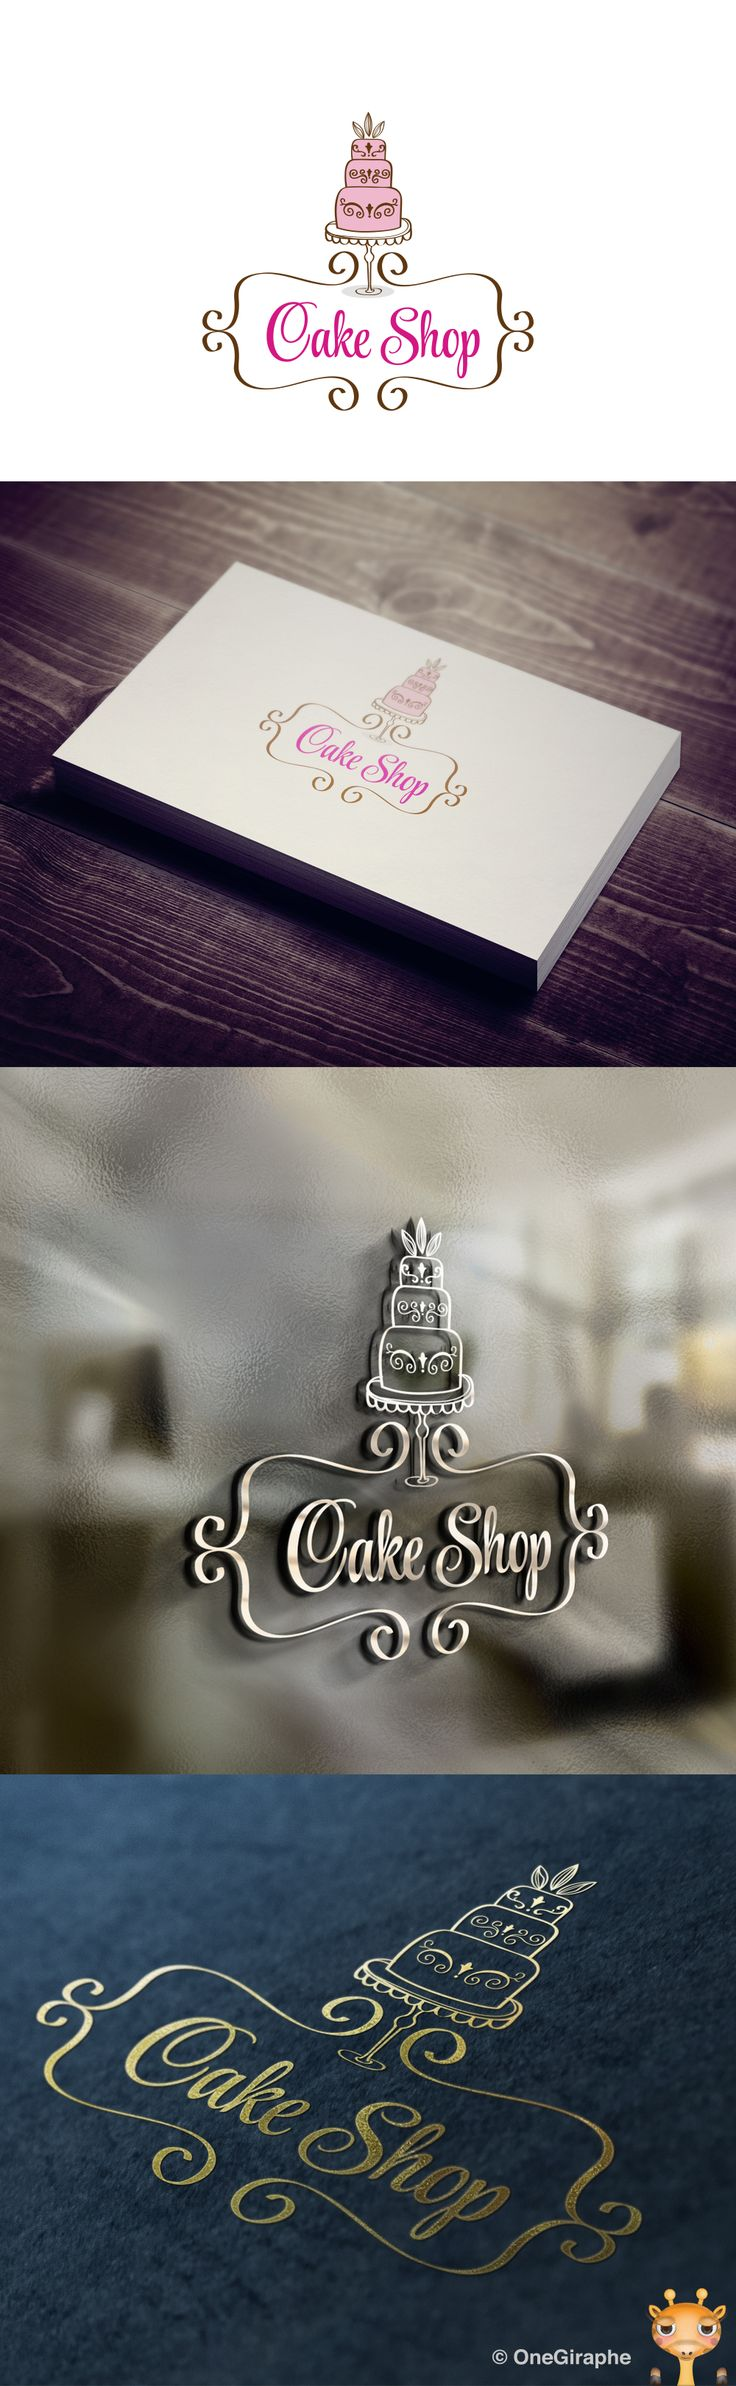 I like the font and the way and the cake image work together and it's ability to be used without colour to watermark. Not completely in love with it but like the idea.